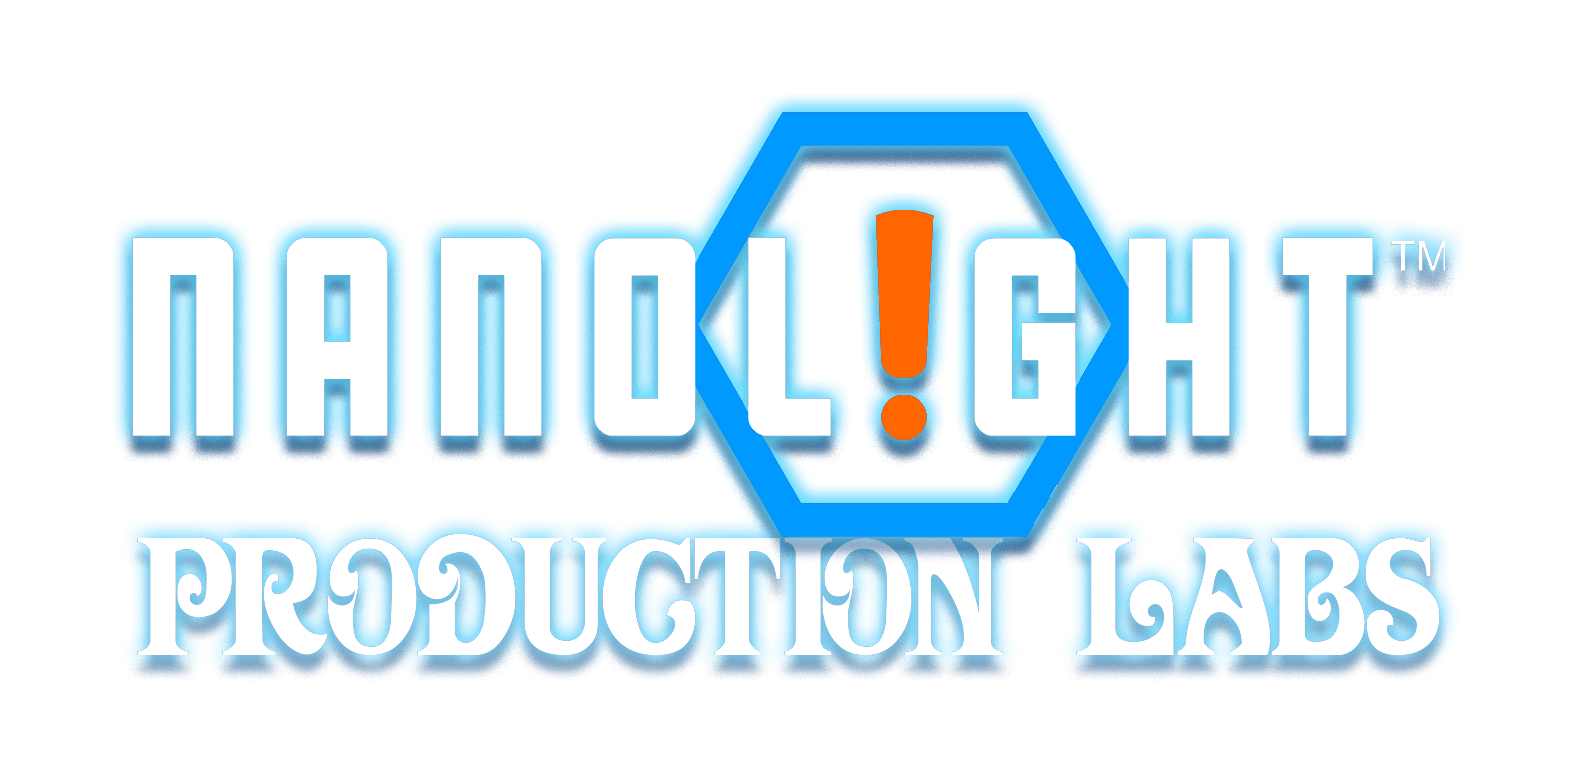 Nano Light Production Labs